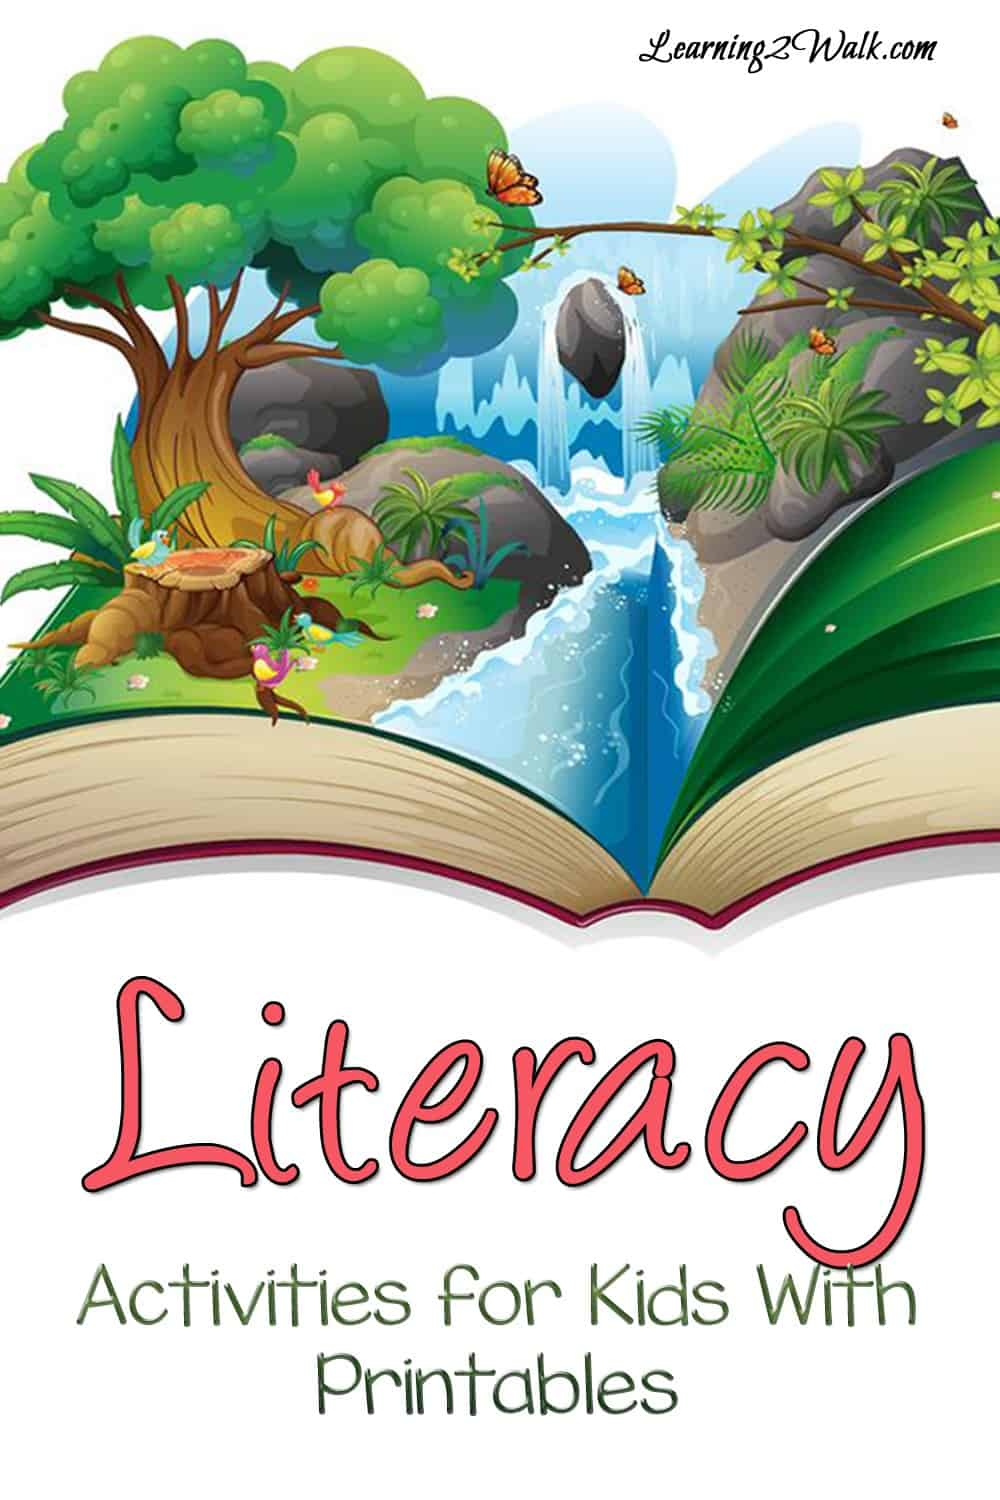 Looking for a few literacy activities for kids with printables? Perhaps an alphabet worksheet? Or a cvc word game? Try some of these